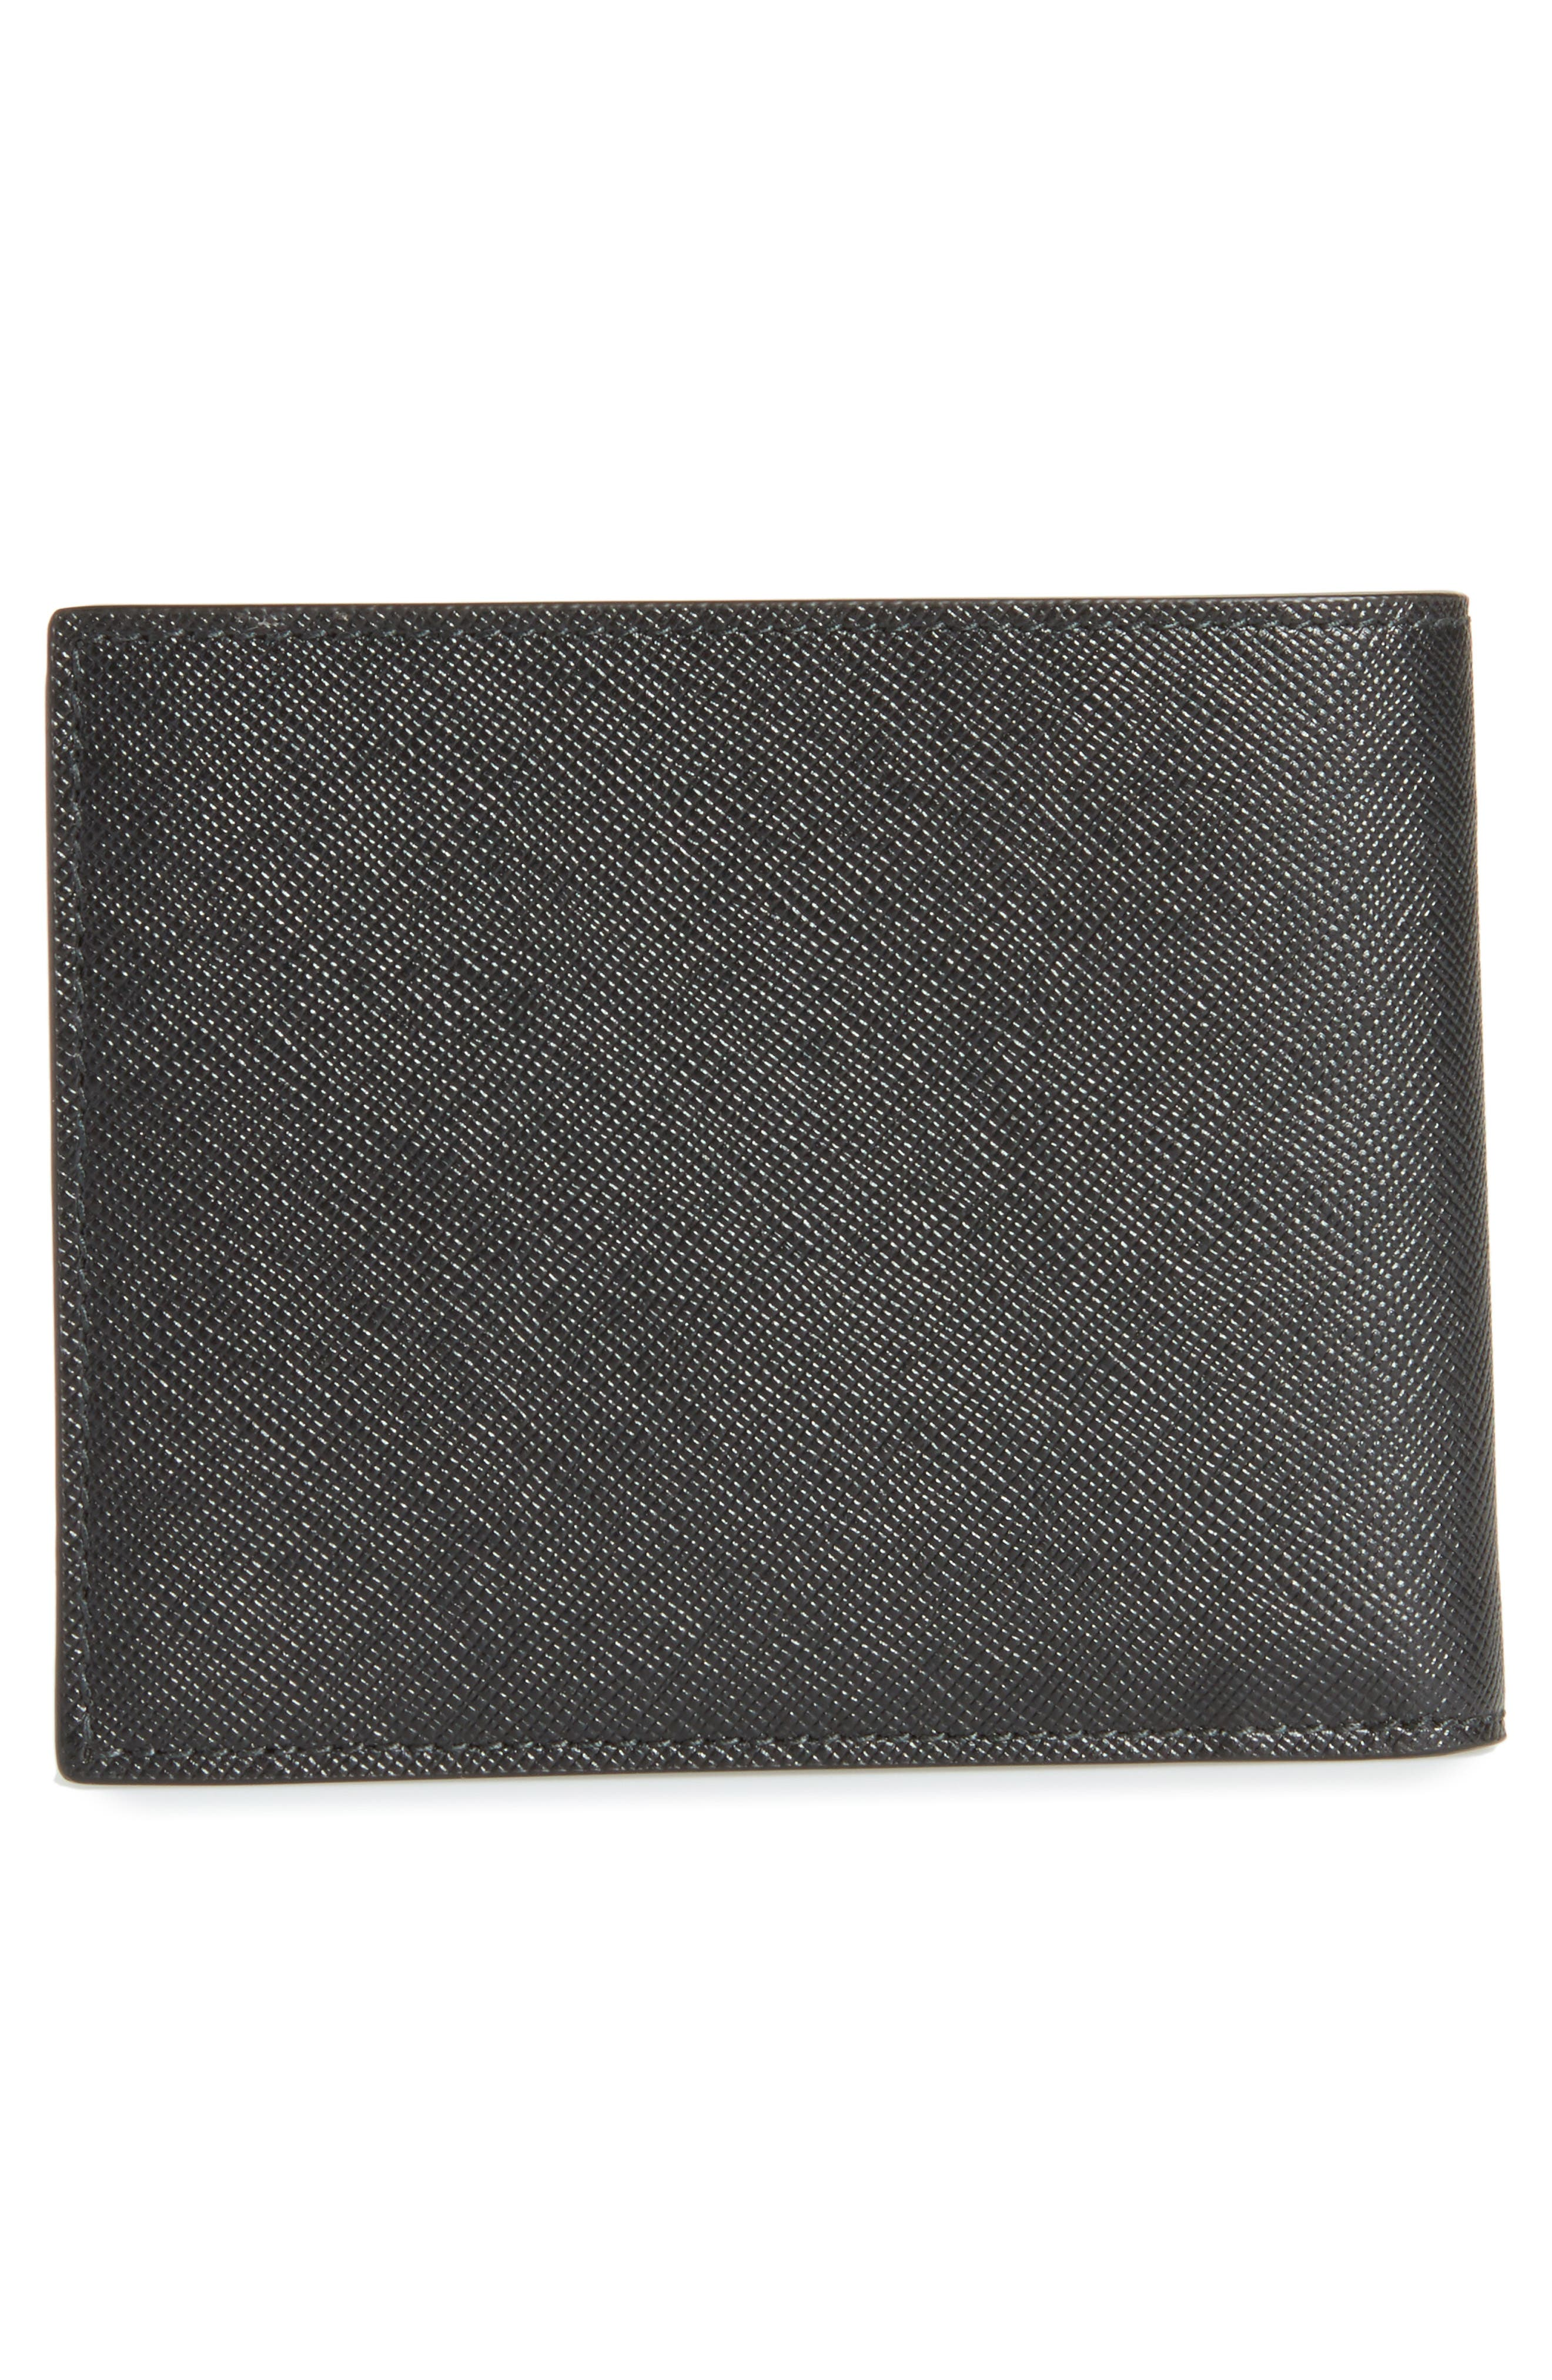 Sartorial Leather Bifold Wallet,                             Alternate thumbnail 5, color,